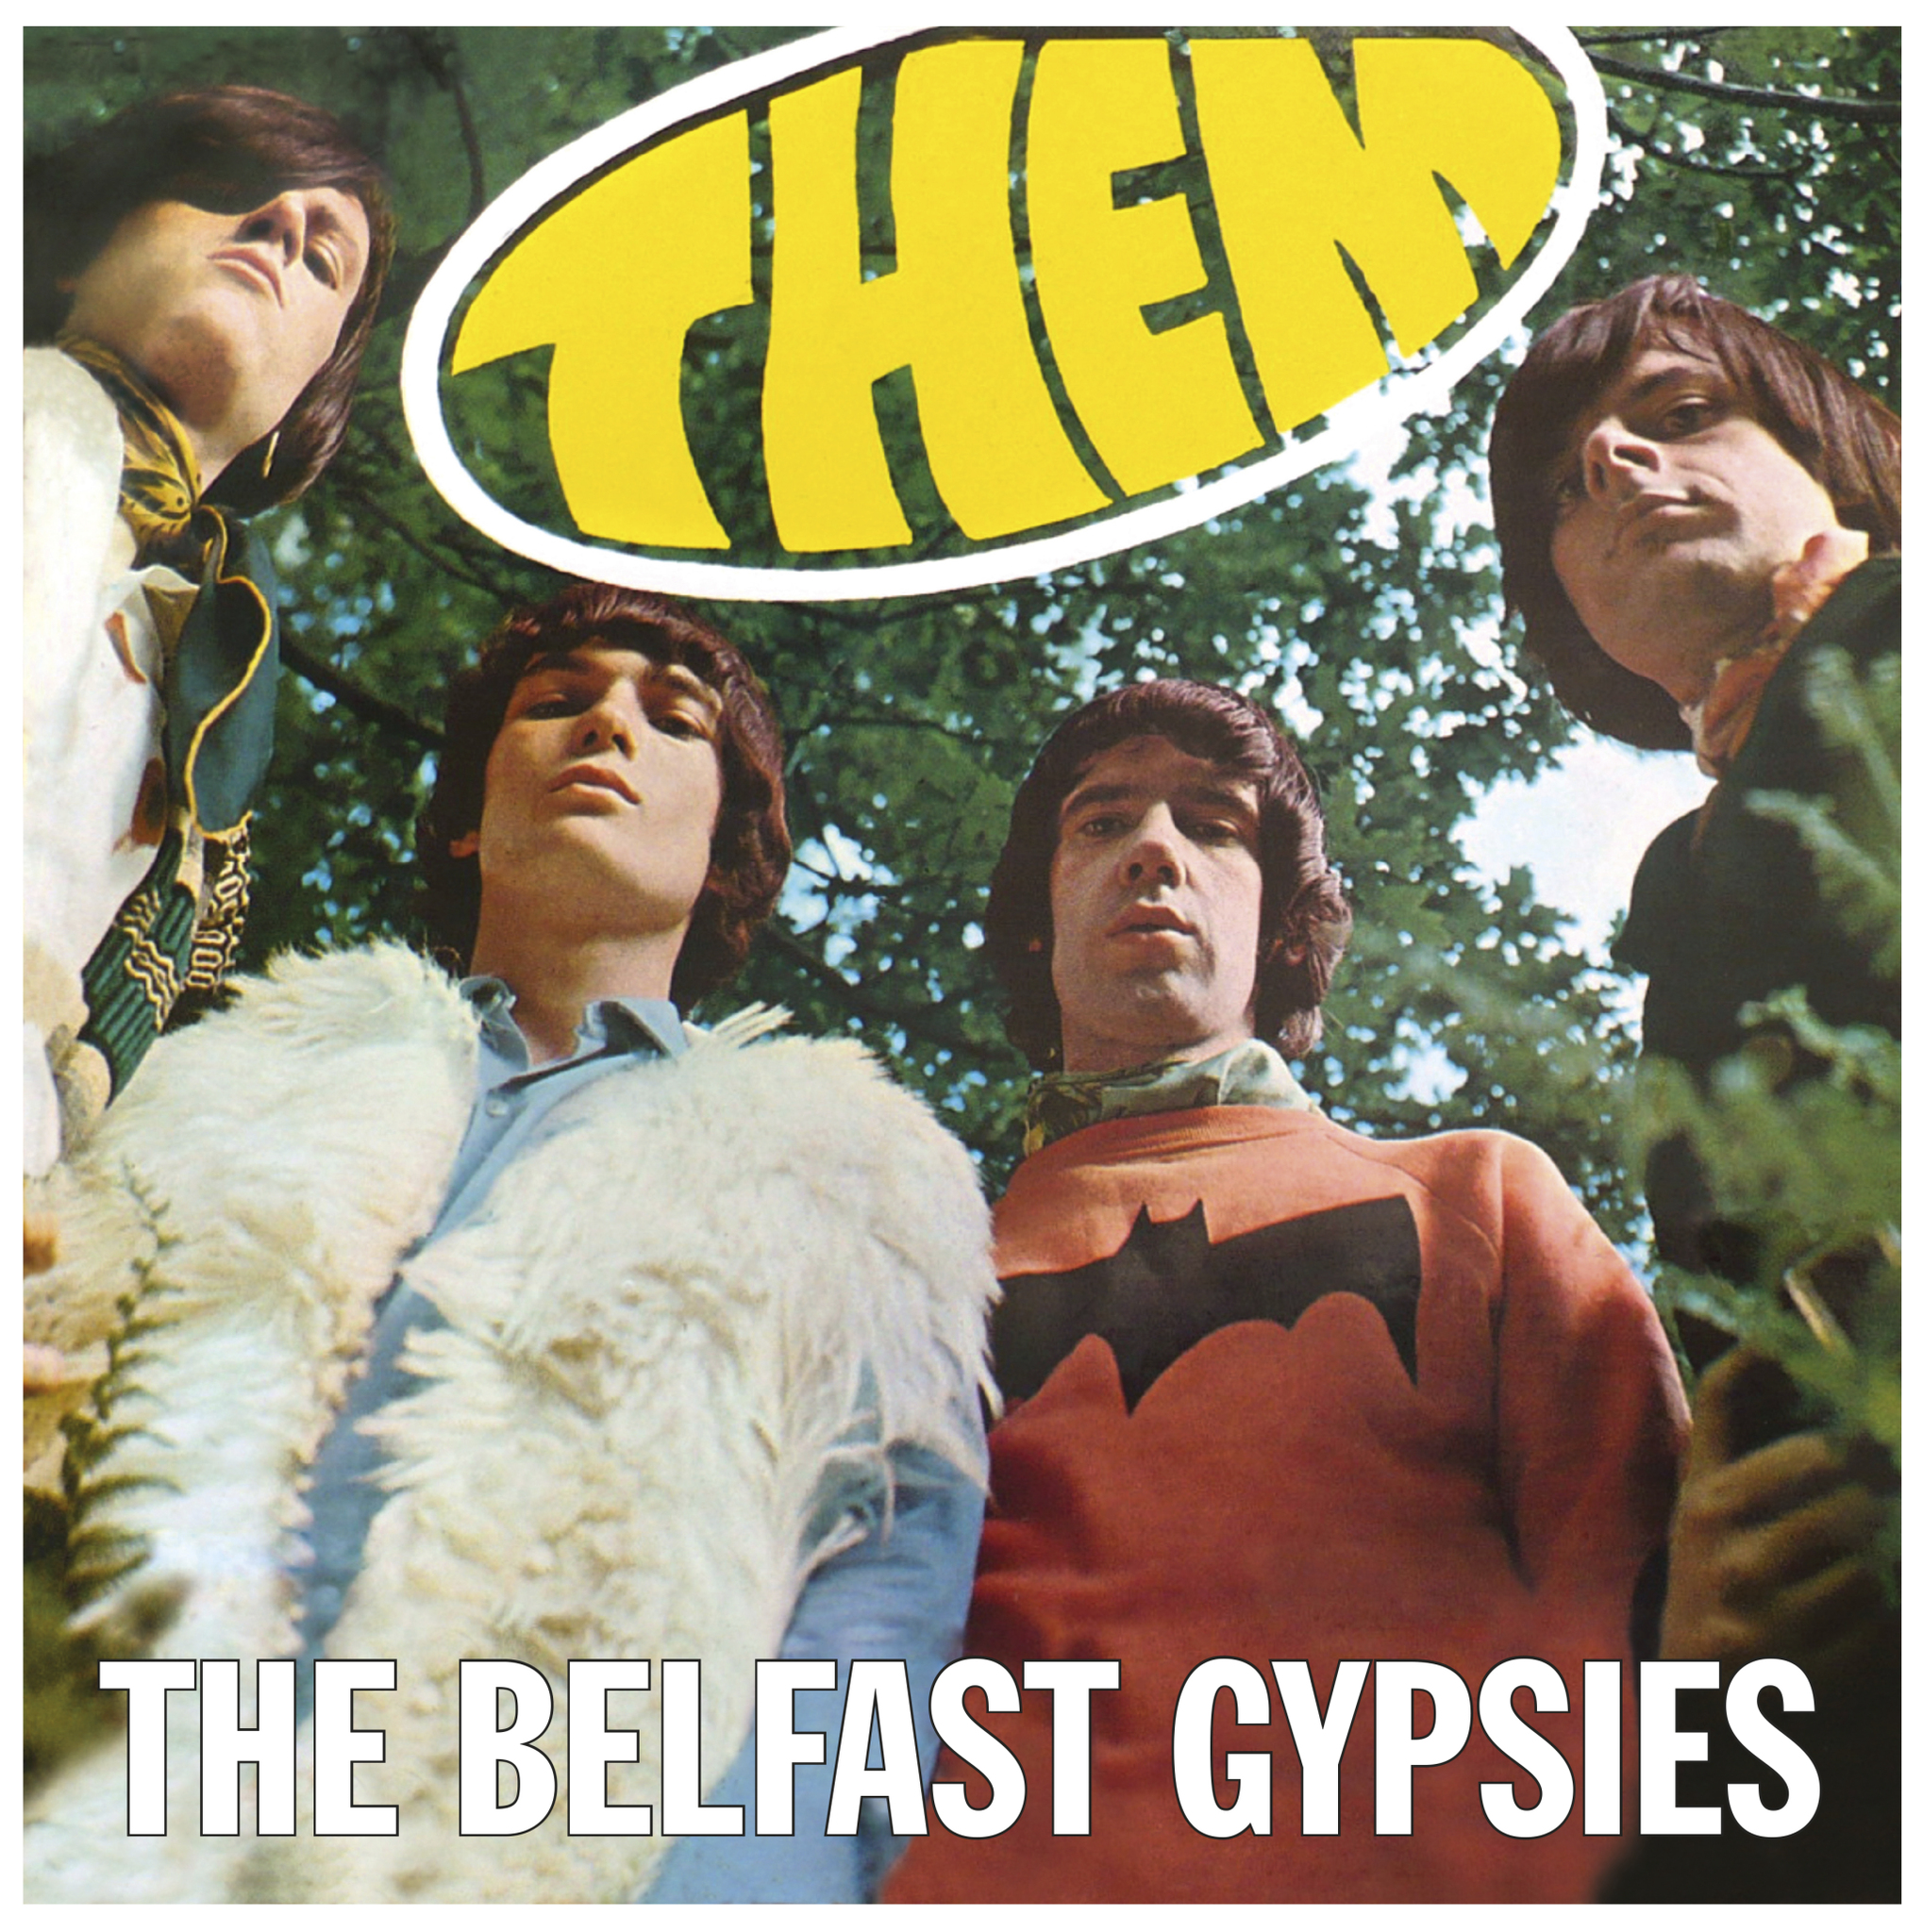 Belfast Gypsies/THEM BELFAST GYPSIES LP